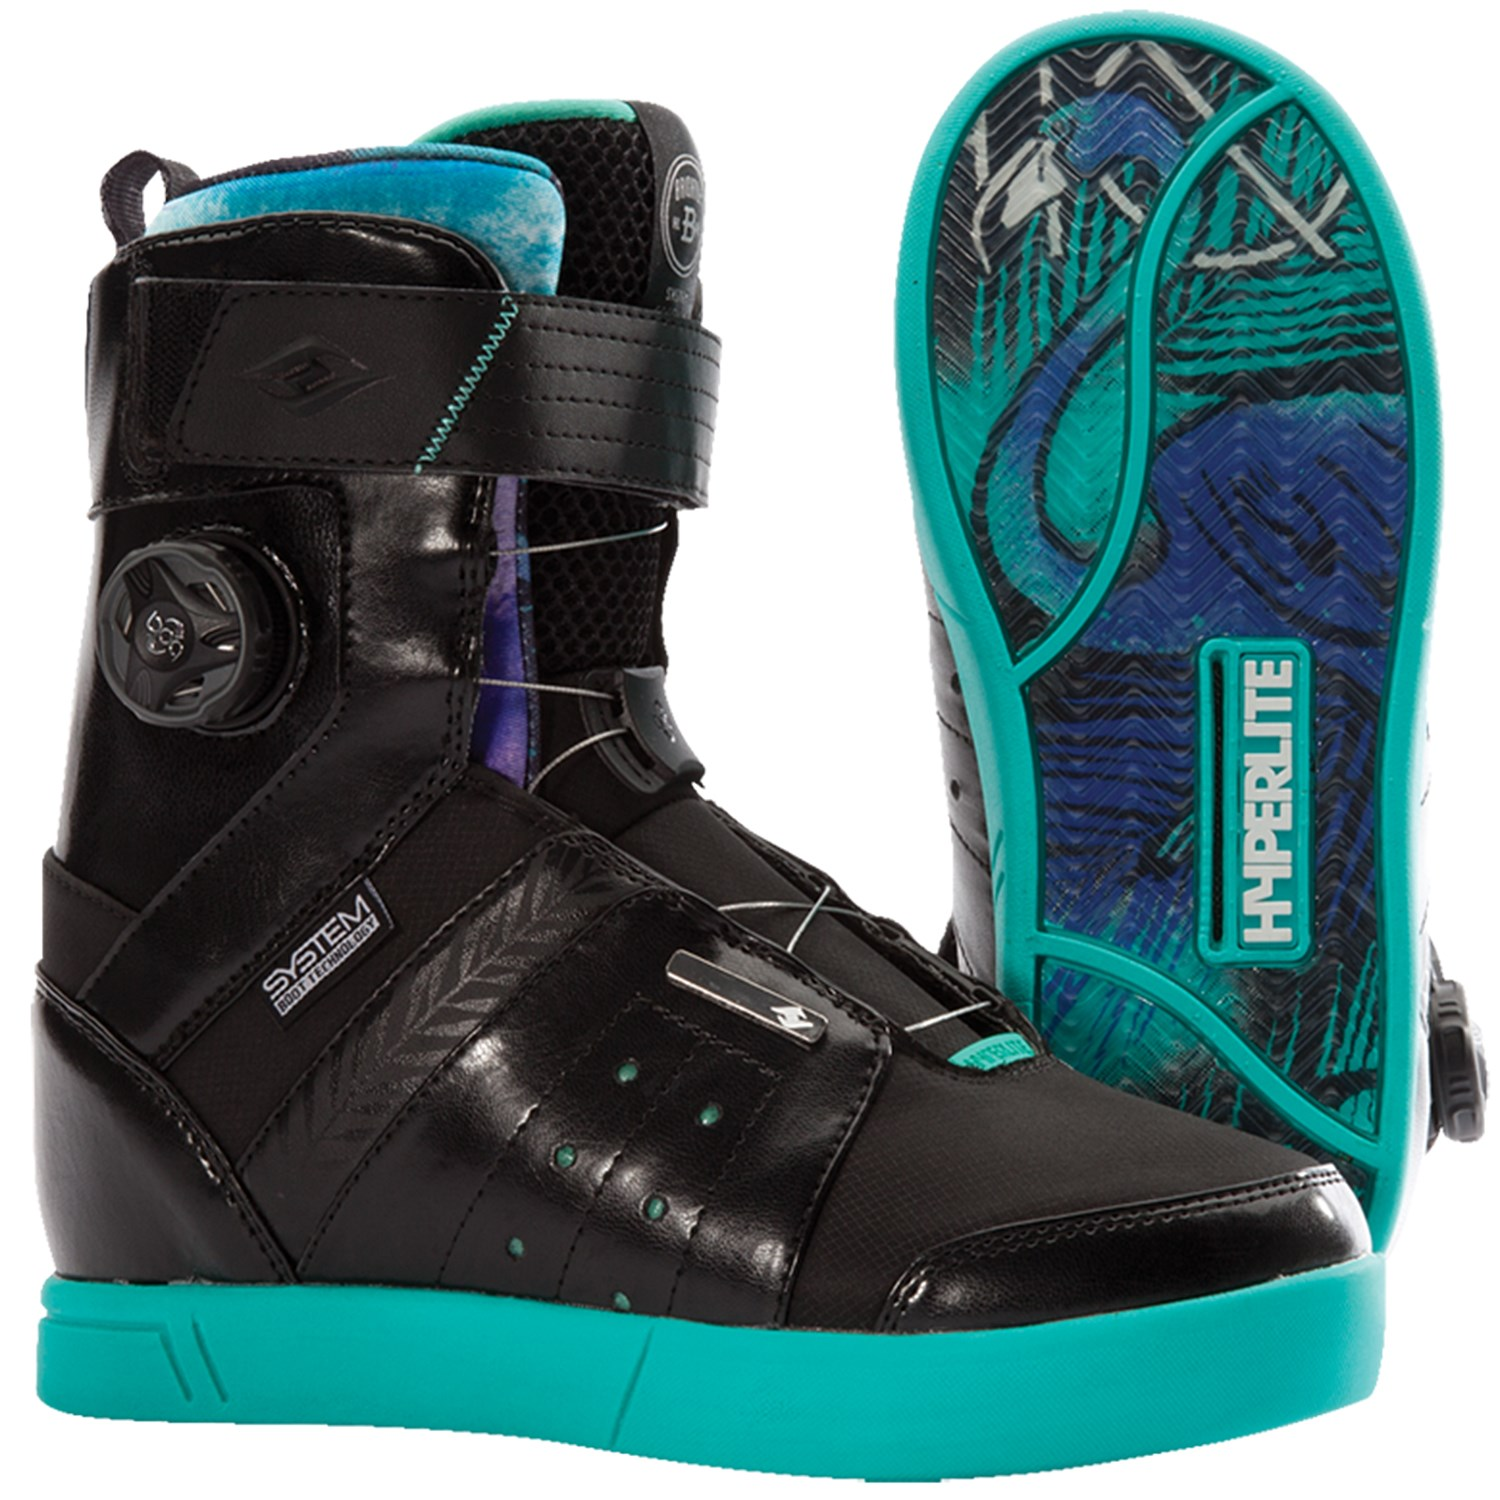 hyperlite brighton wakeboard boots s the system